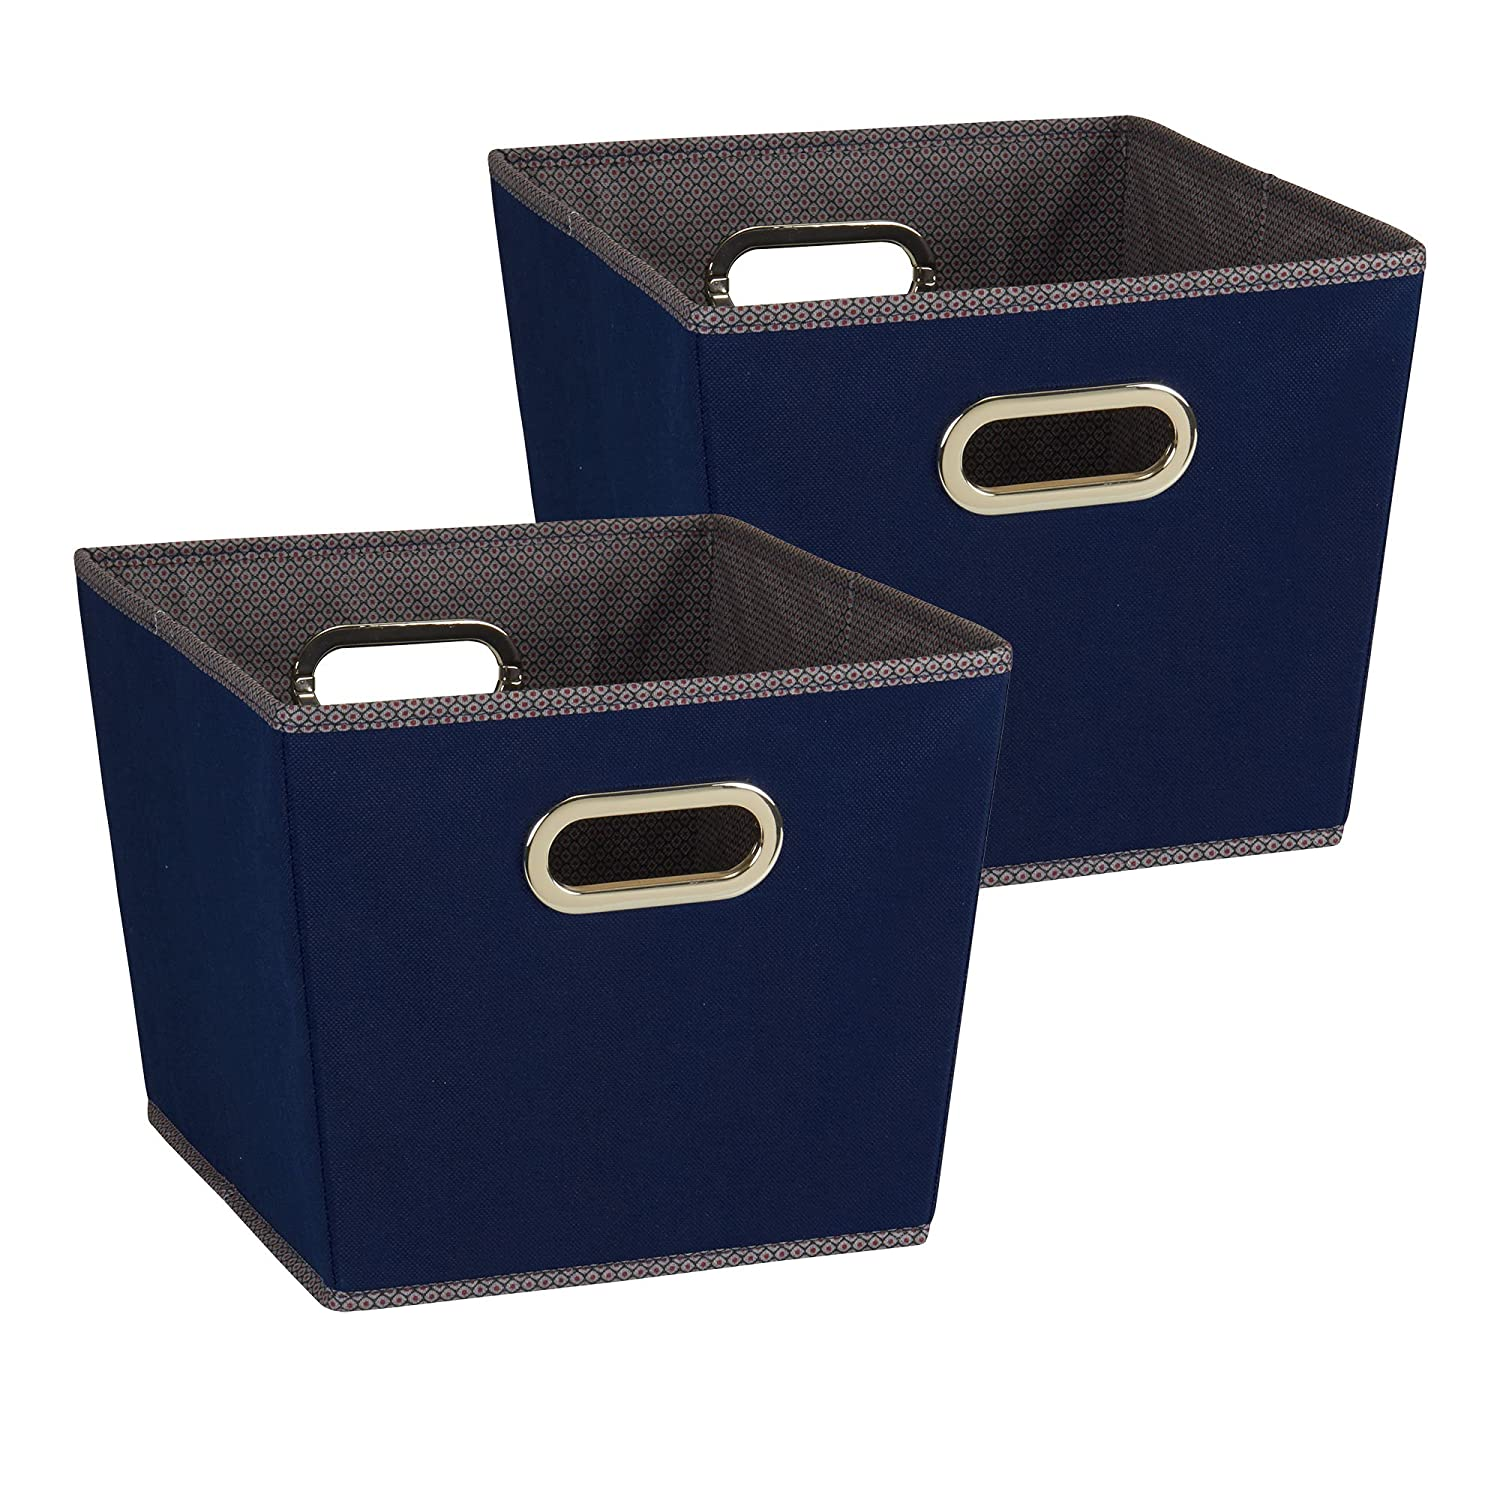 Gentil Amazon.com: Household Essentials 94 Medium Tapered Decorative Storage Bins  | 2 Pack Set Cubby Baskets | Navy Blue: Home U0026 Kitchen